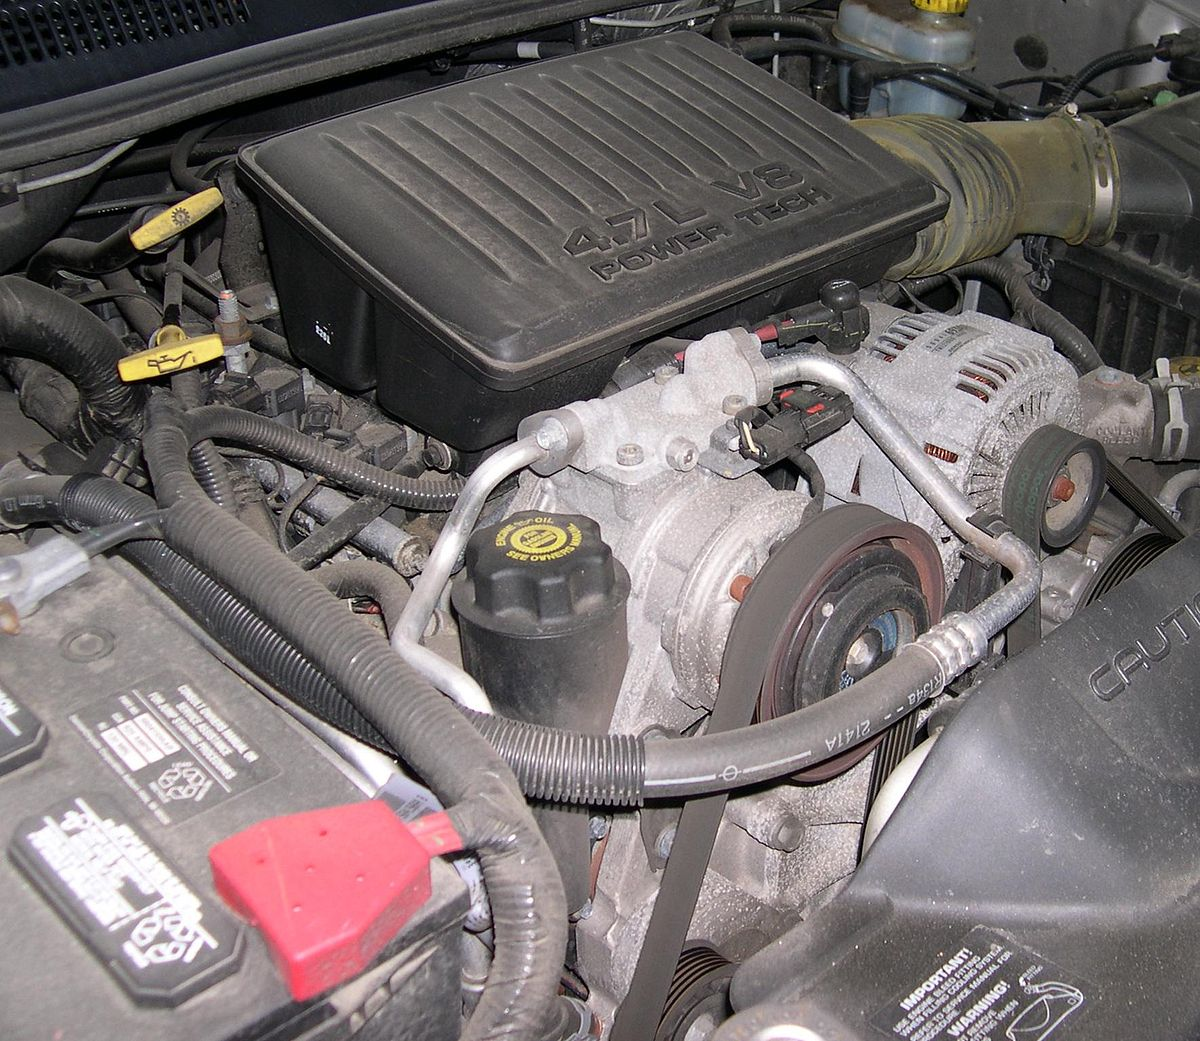 chrysler powertech engine wikipedia2011 Hemi Motor Wiring Diagram #18